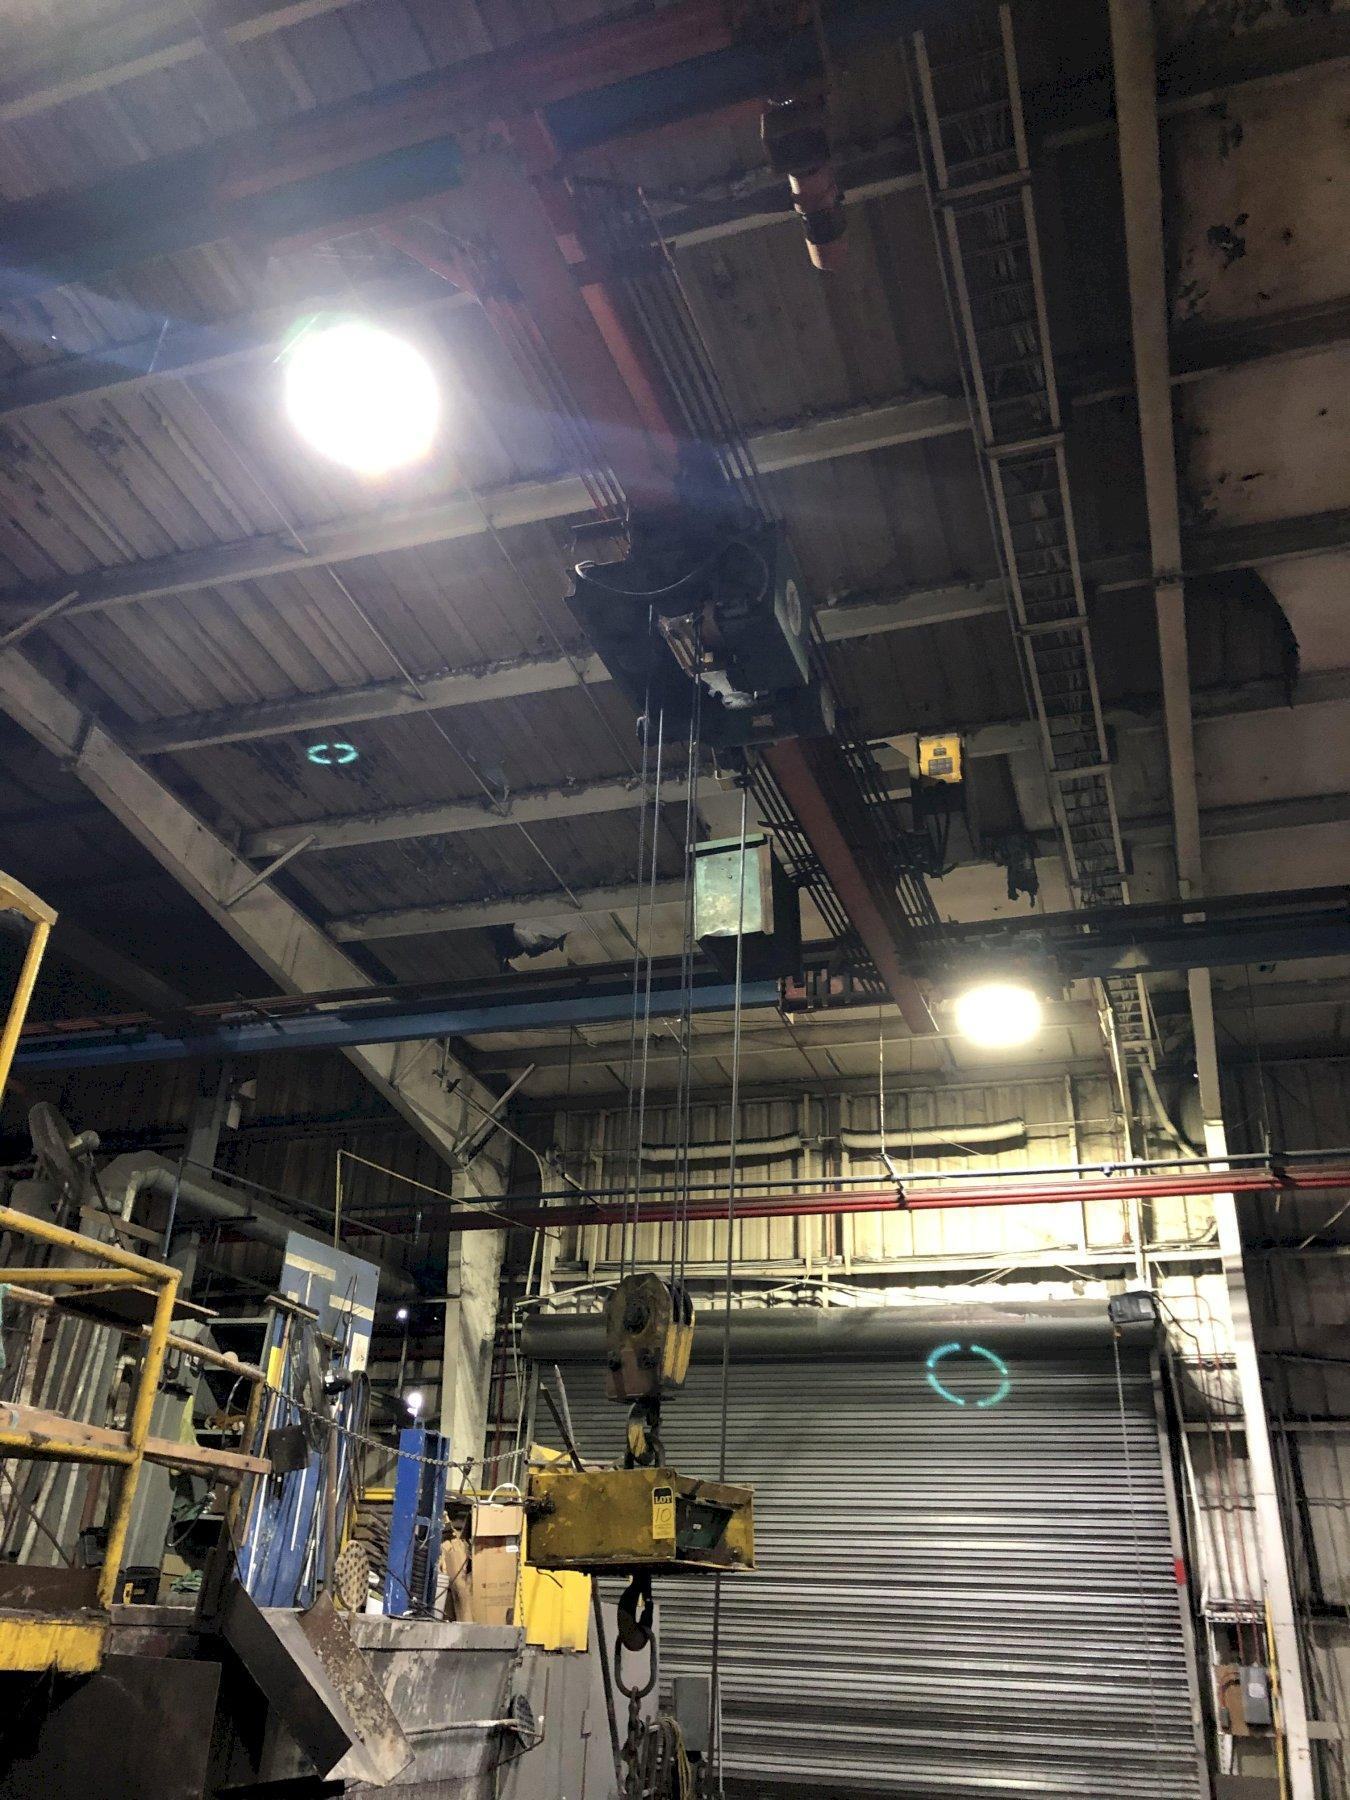 UNDERSLUNG APPROX. 25' SPAN BRIDGE CRANE WITH COFFING 5 TON HOIST AND SCALE, REMOTE CONTROLS PRICED WITH TAG#3